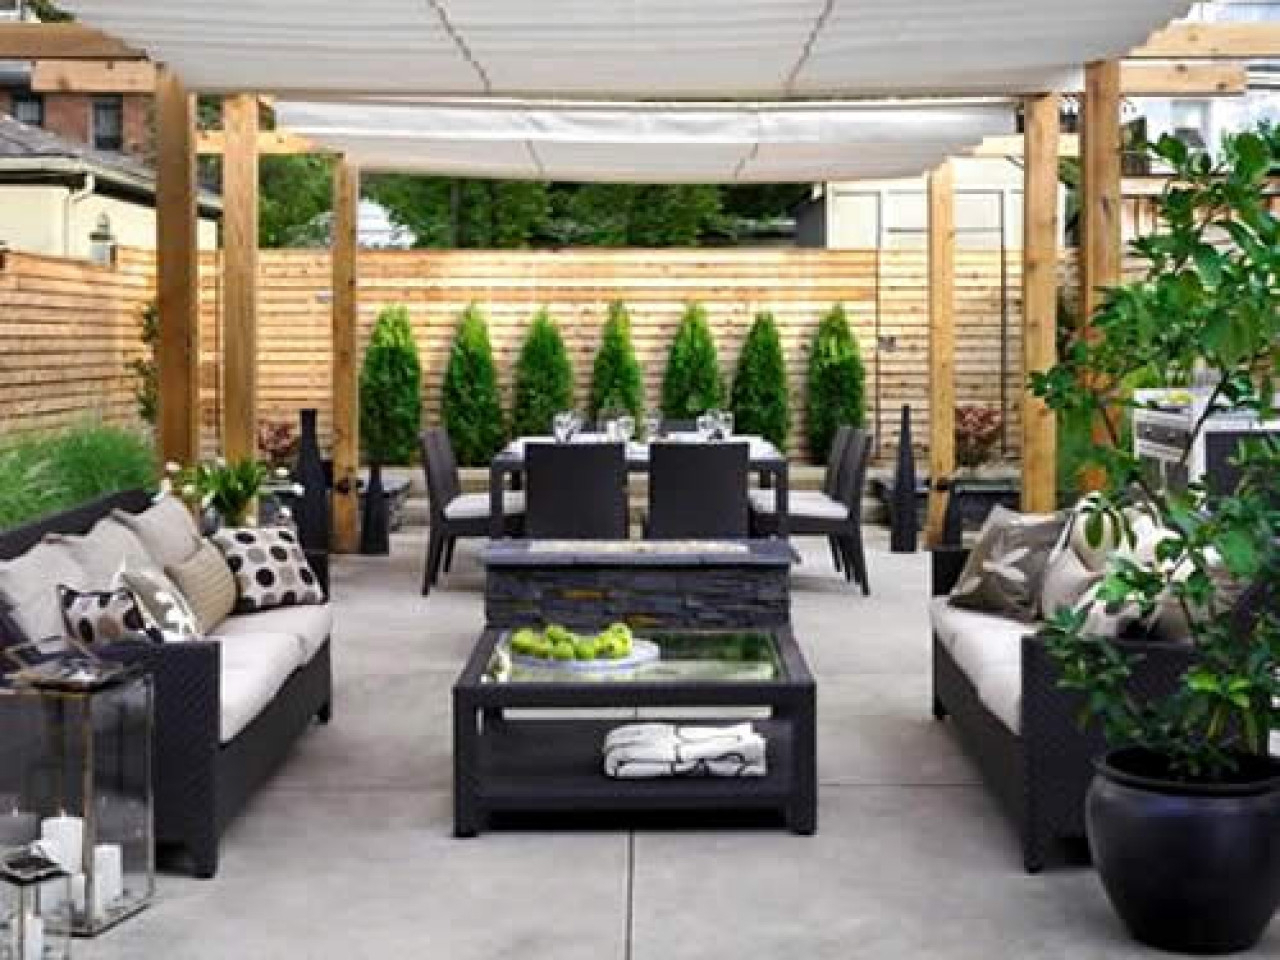 Condo Patio Garden Ideas Wonderful Small Patio Decorating Ideas Layjao